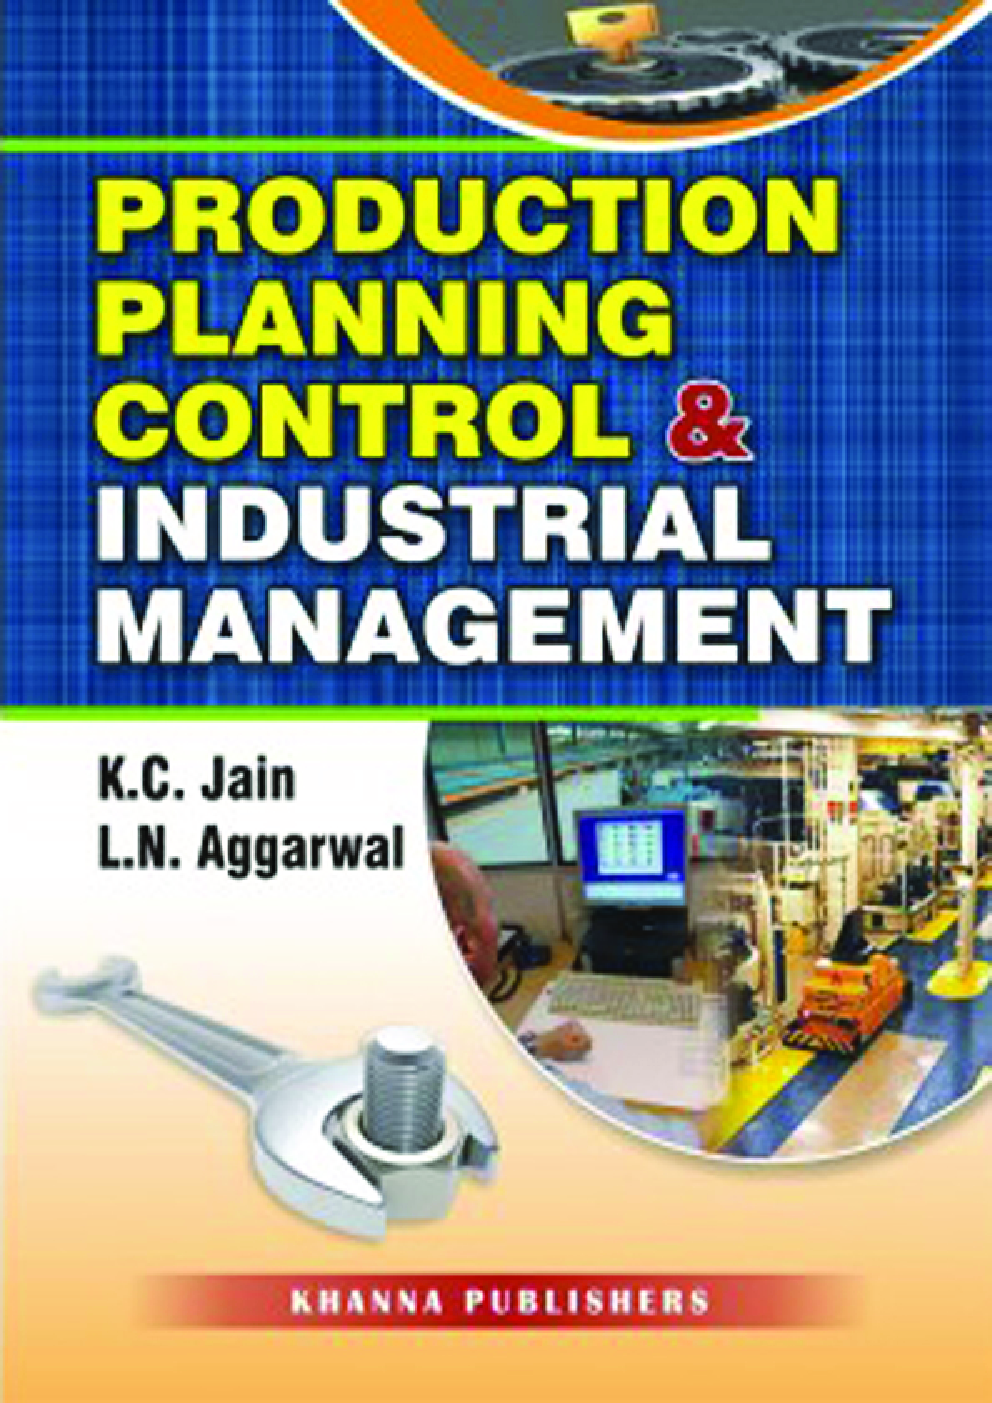 Production planning and control by jain and agarwal pdf